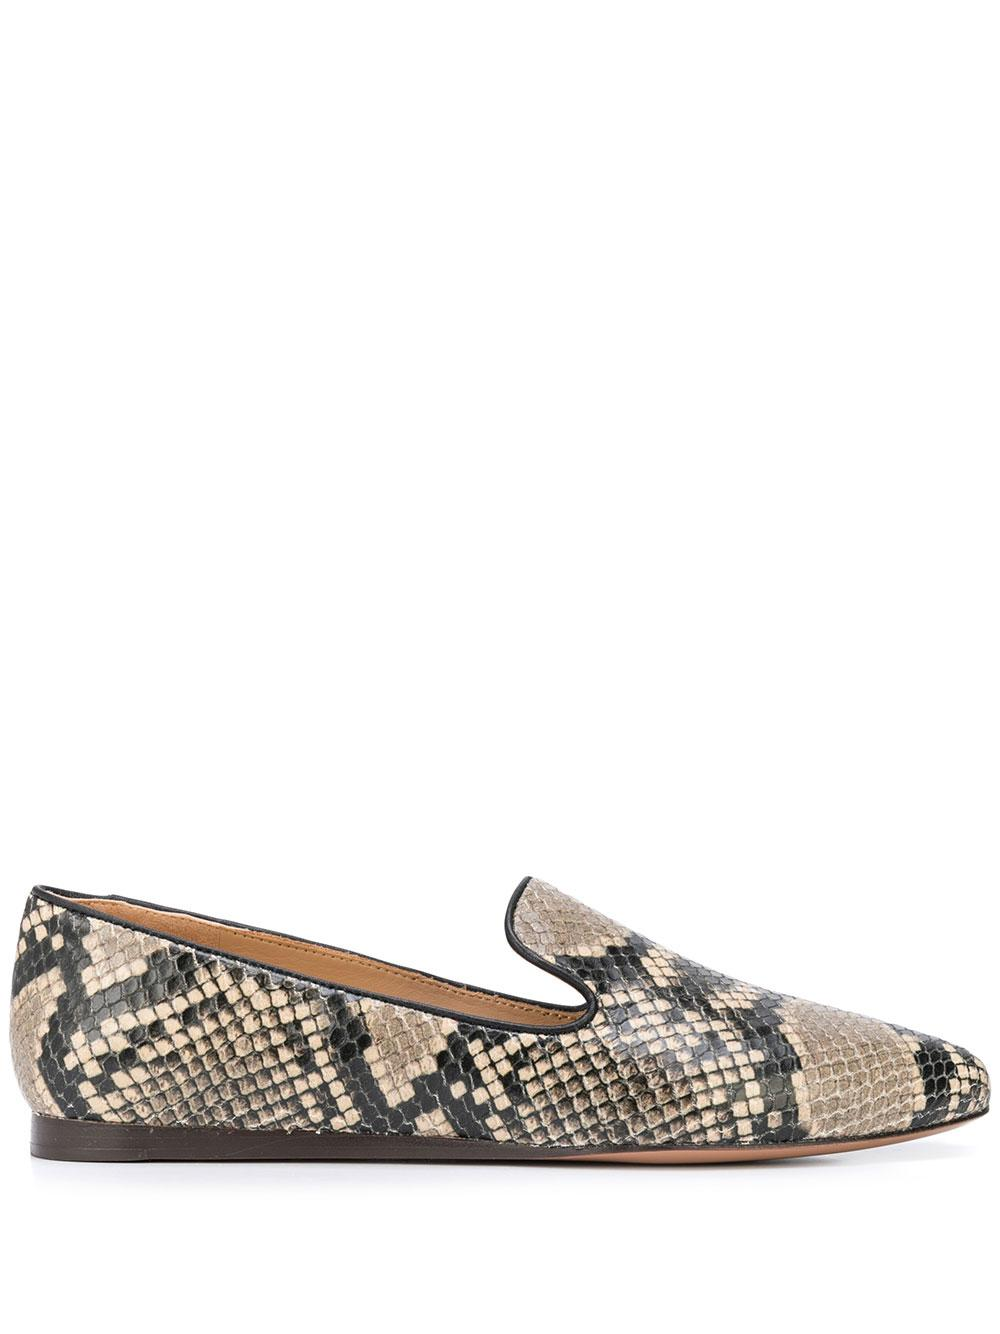 Griffin Python Print Flat Loafer